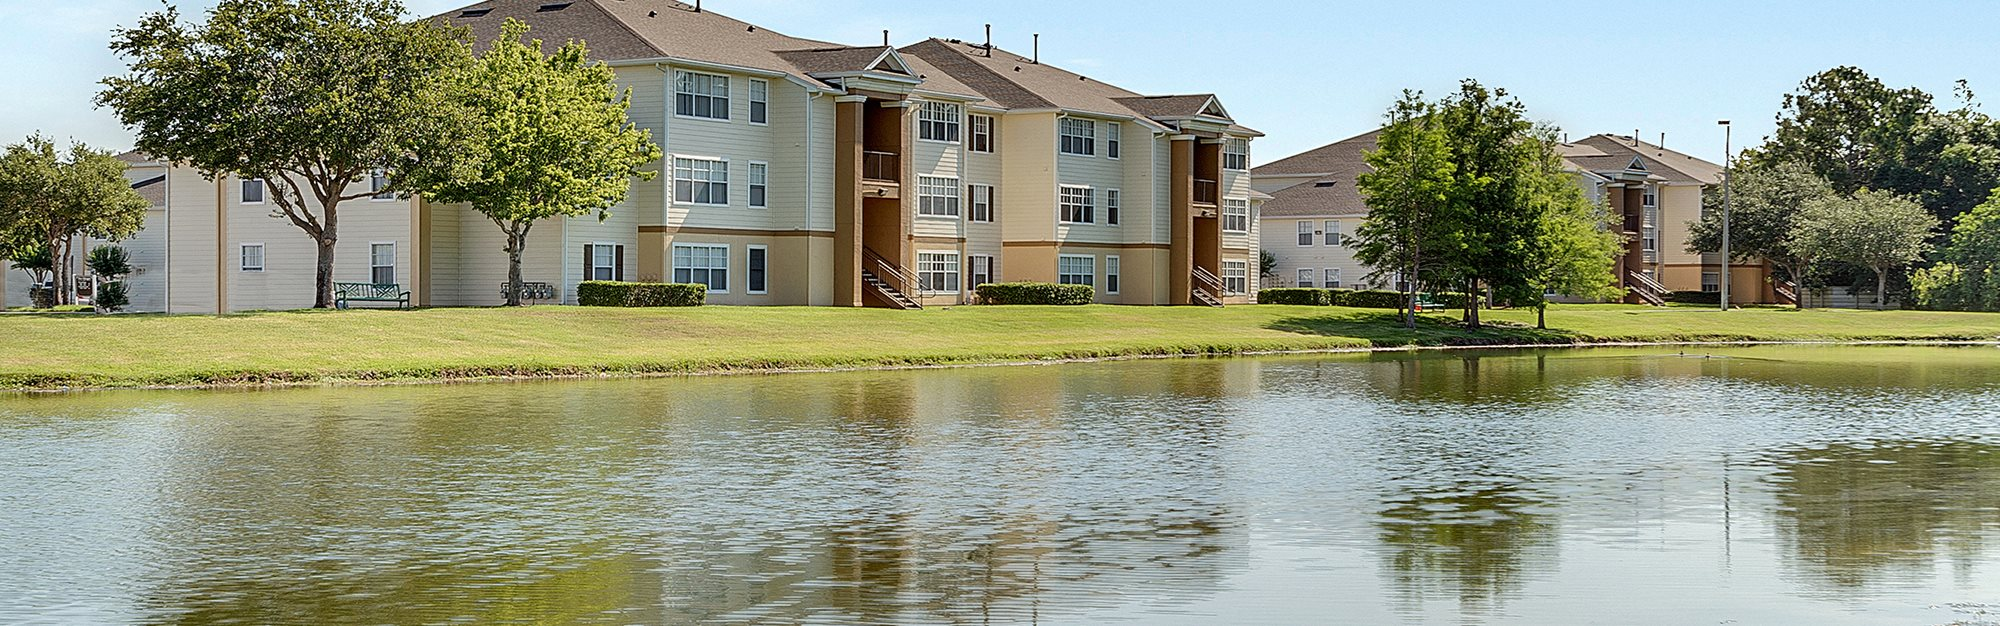 The Villages on Millenia Apartments for rent in Orlando, FL. Make this community your new home or visit other Concord Rents communities at ConcordRents.com. Lake view